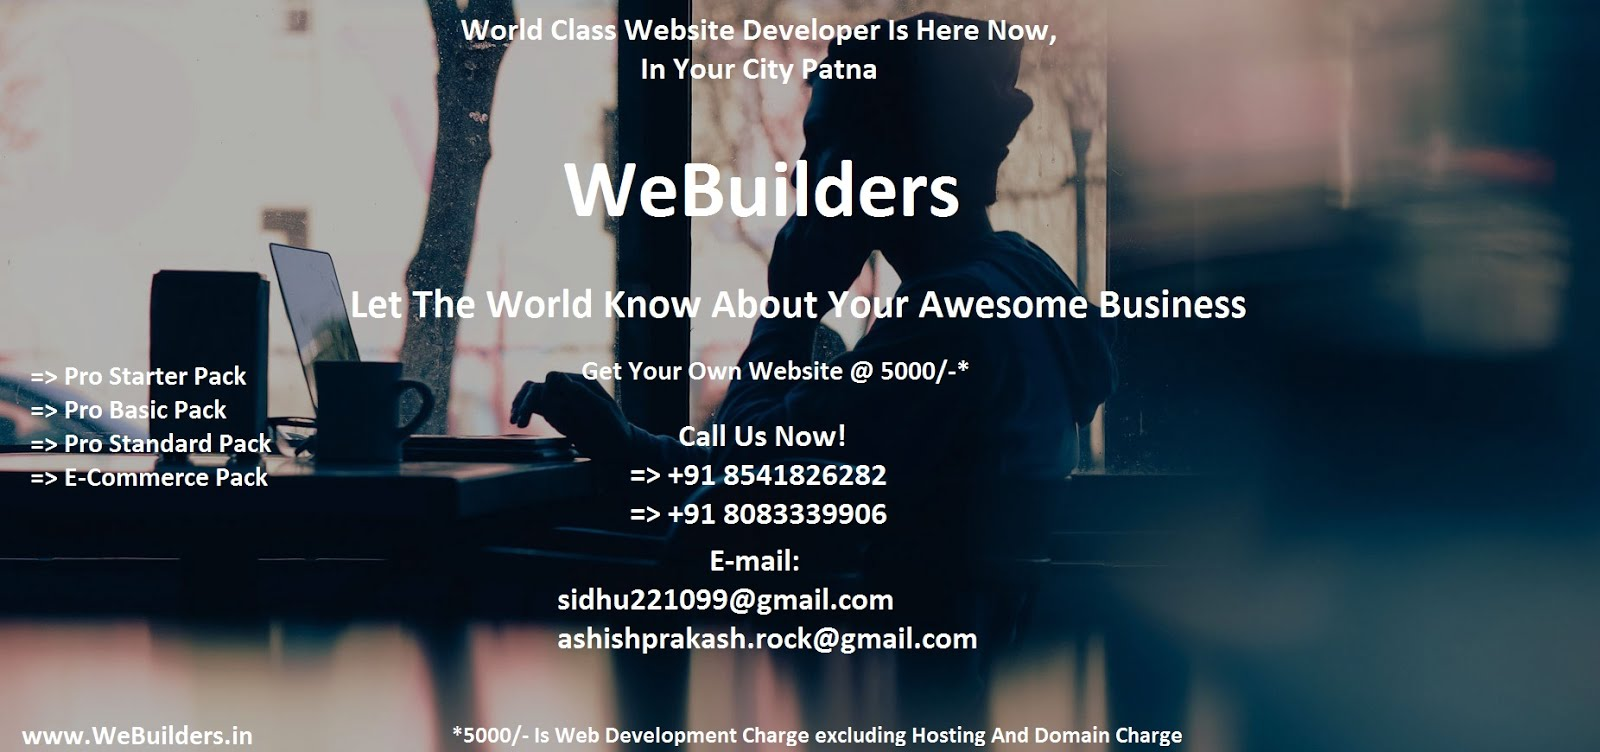 WeBuilder - Web Developer